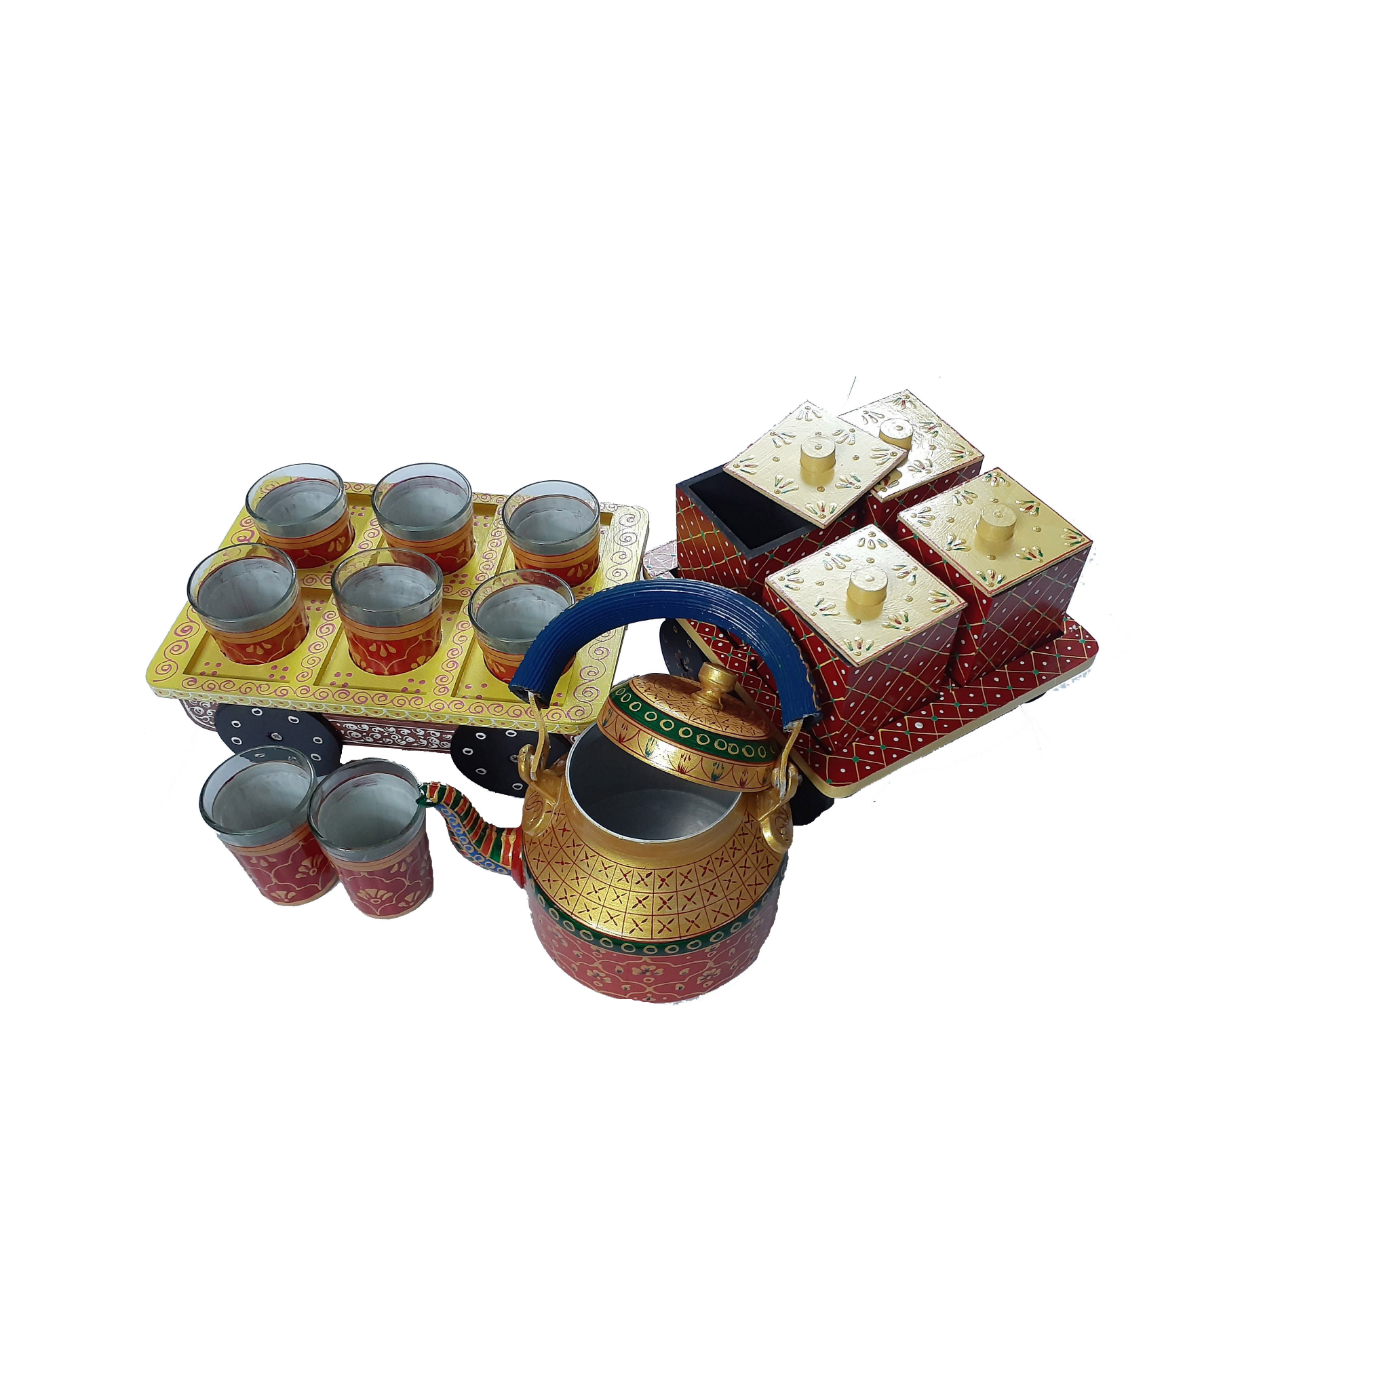 Multicolor Hand painted Aluminium Tea Kettle Set With 8 Glasses and Wooden dry fruits box., 4 image